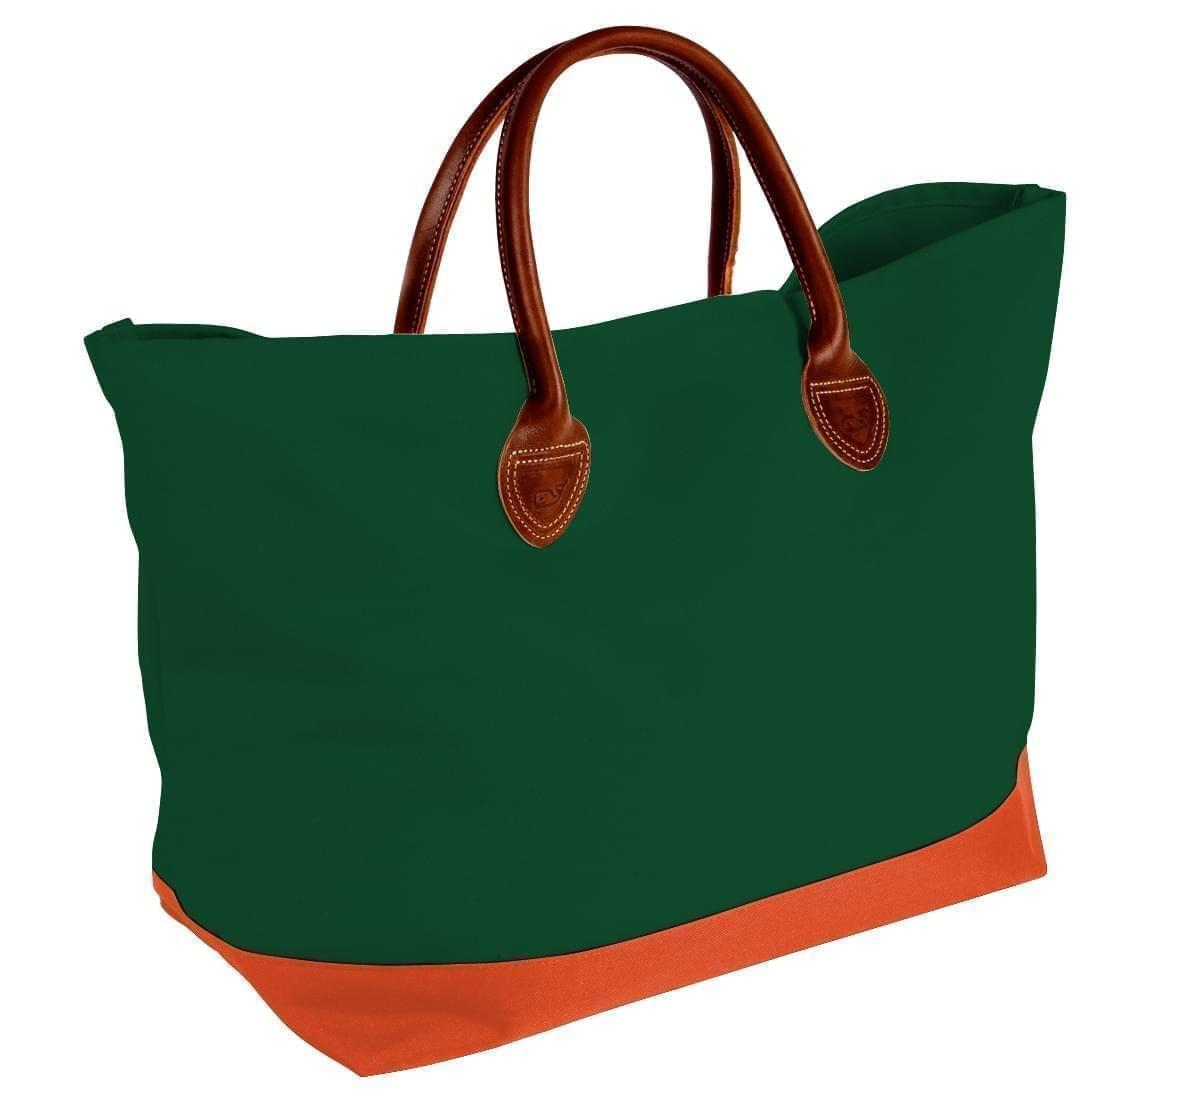 USA Made Canvas Leather Handle Totes, Hunter Green-Orange, 10899-JI9